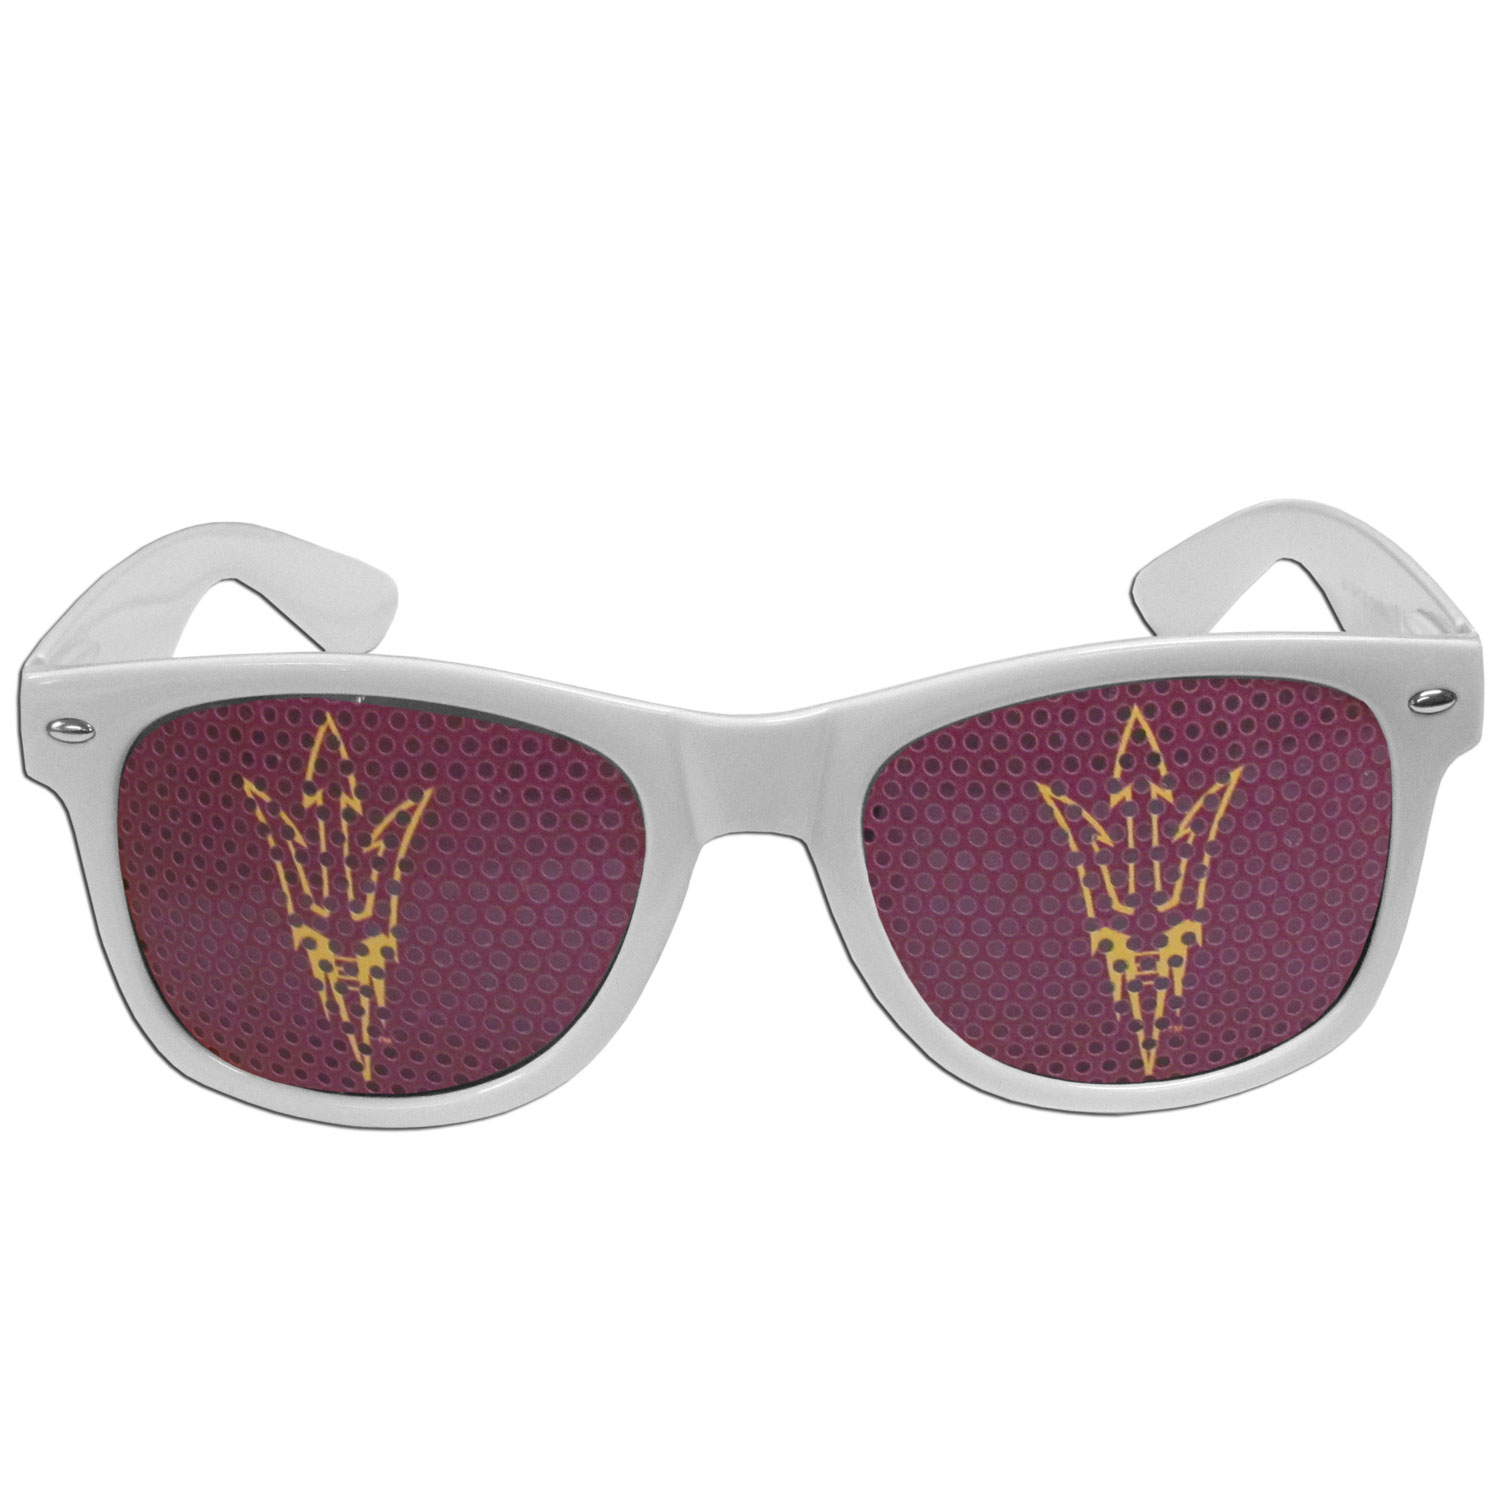 Arizona St. Sun Devils Game Day Shades - Our officially licensed game day shades are the perfect accessory for the devoted Arizona St. Sun Devils fan! The sunglasses have durable polycarbonate frames with flex hinges for comfort and damage resistance. The lenses feature brightly colored team clings that are perforated for visibility.